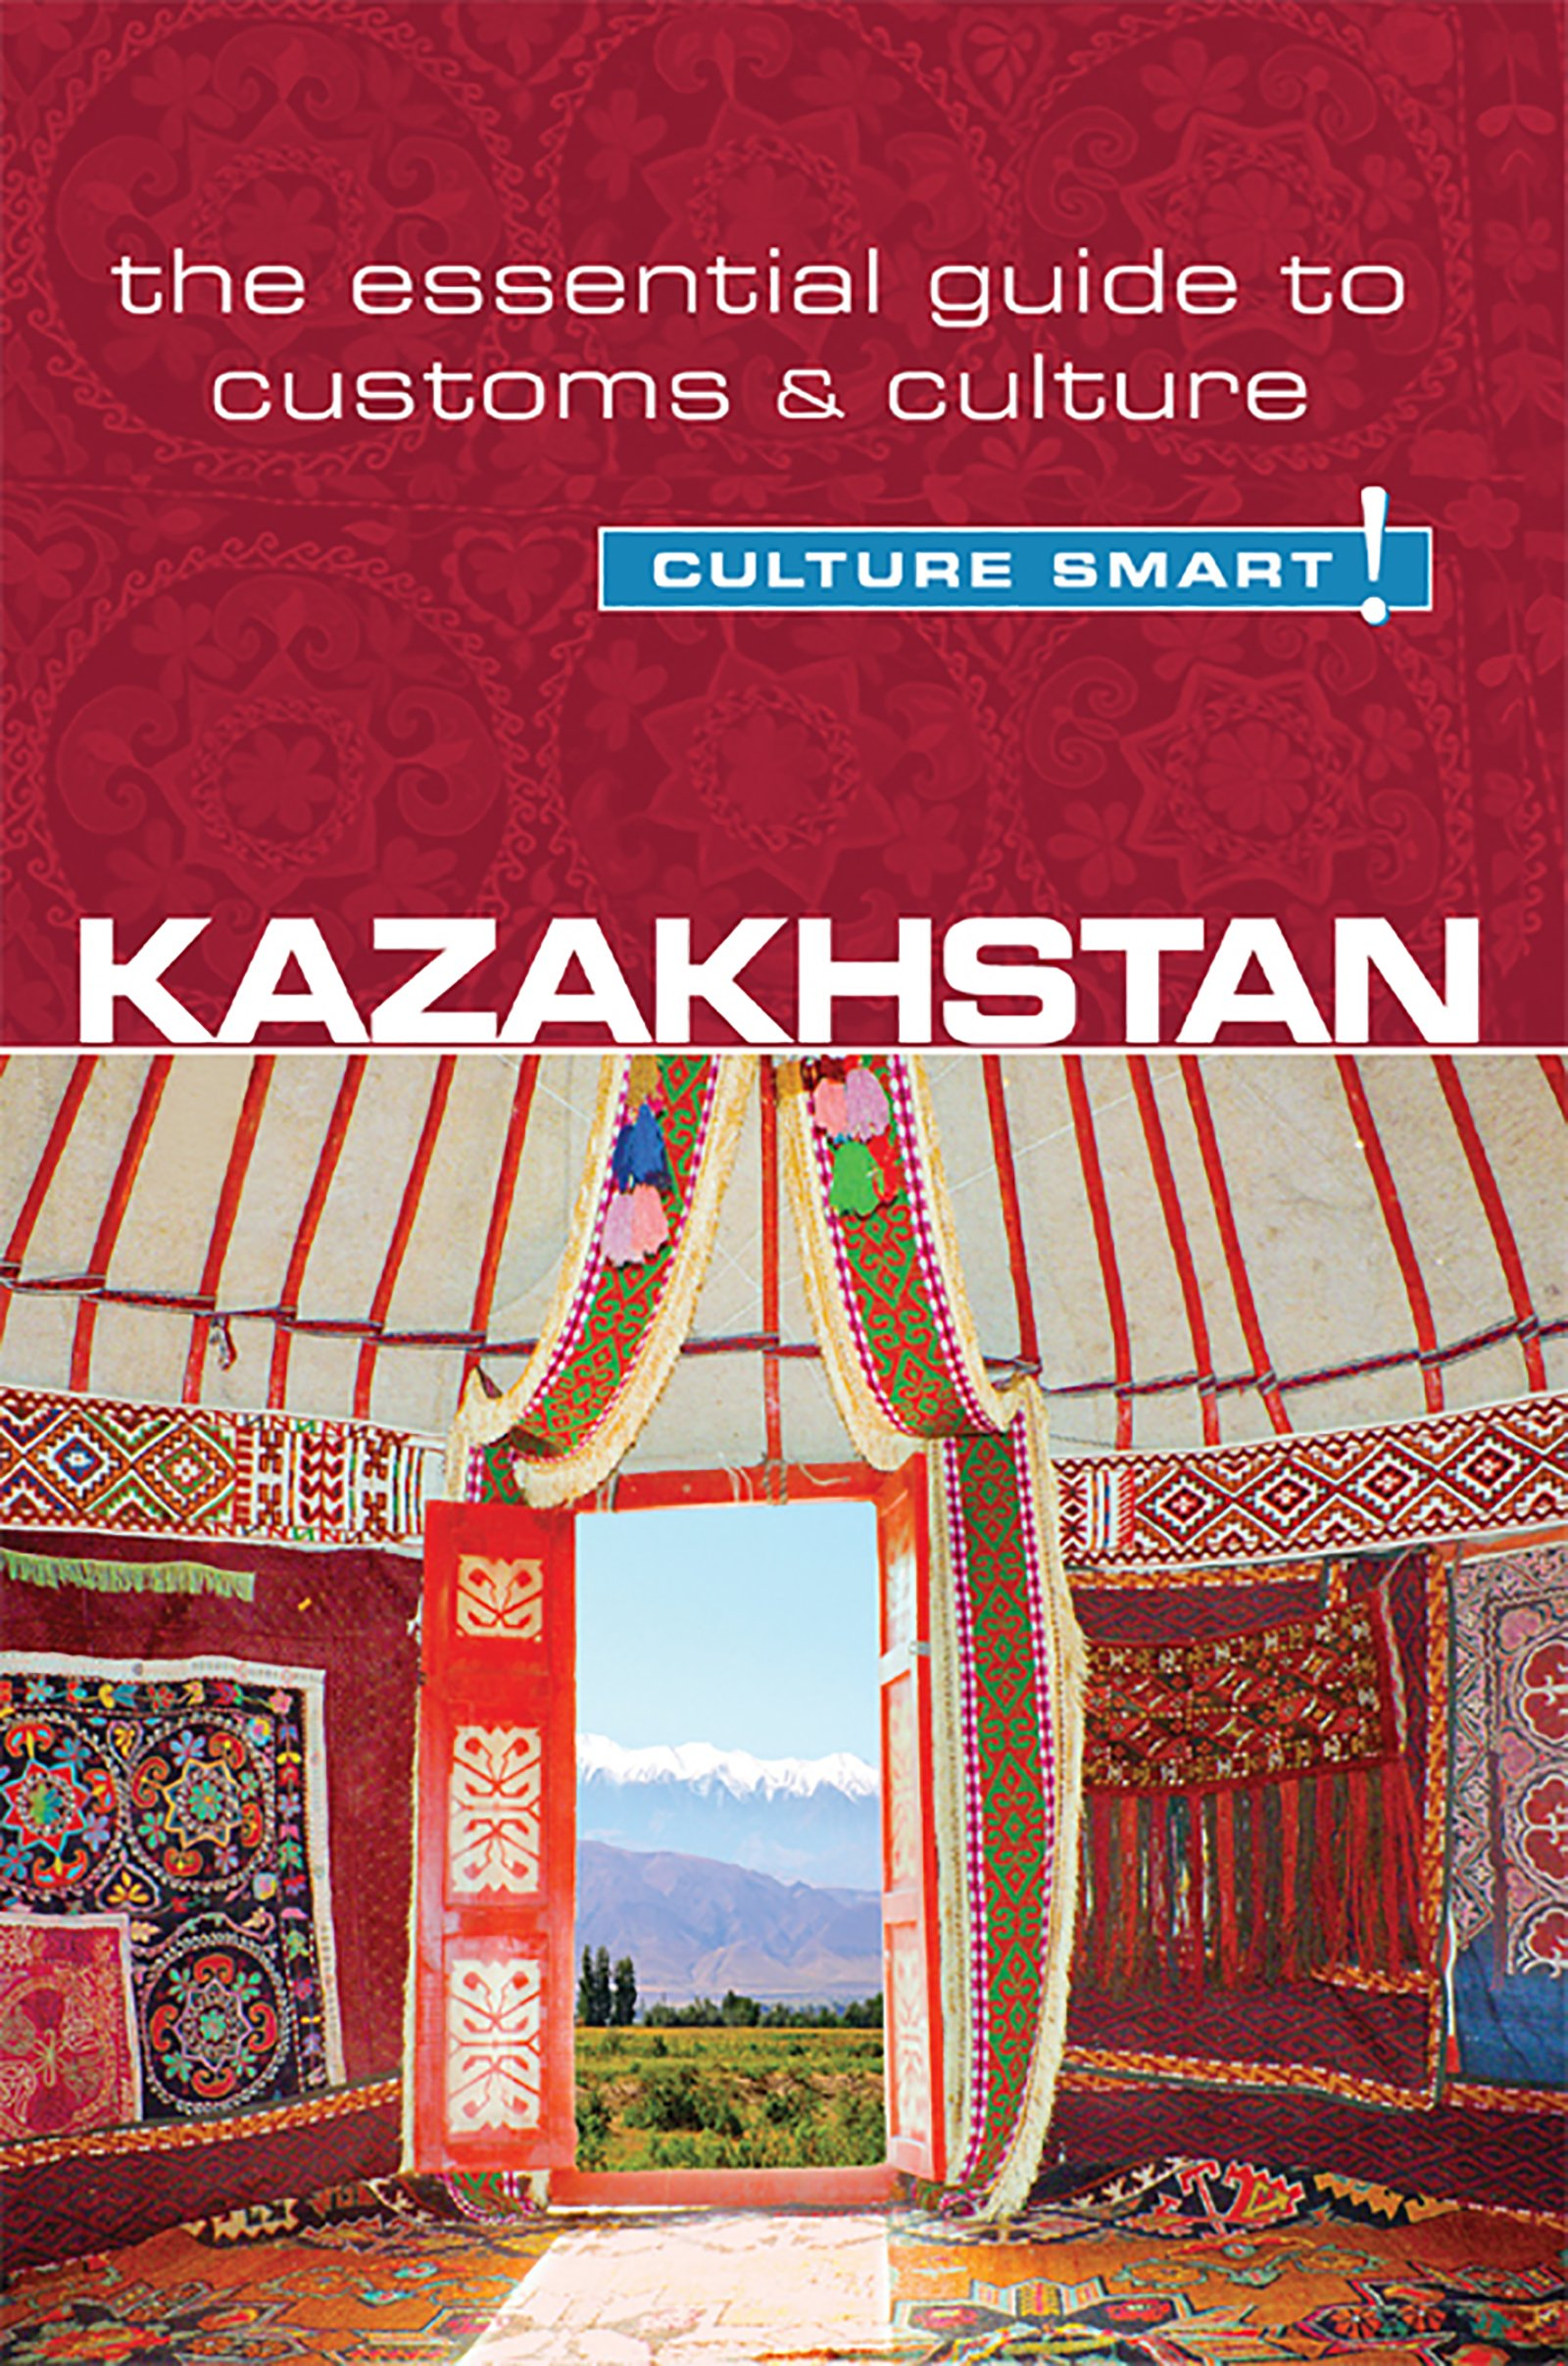 Kazakhstan   Culture Smart   The Essential Guide To Customs And Culture  English Edition